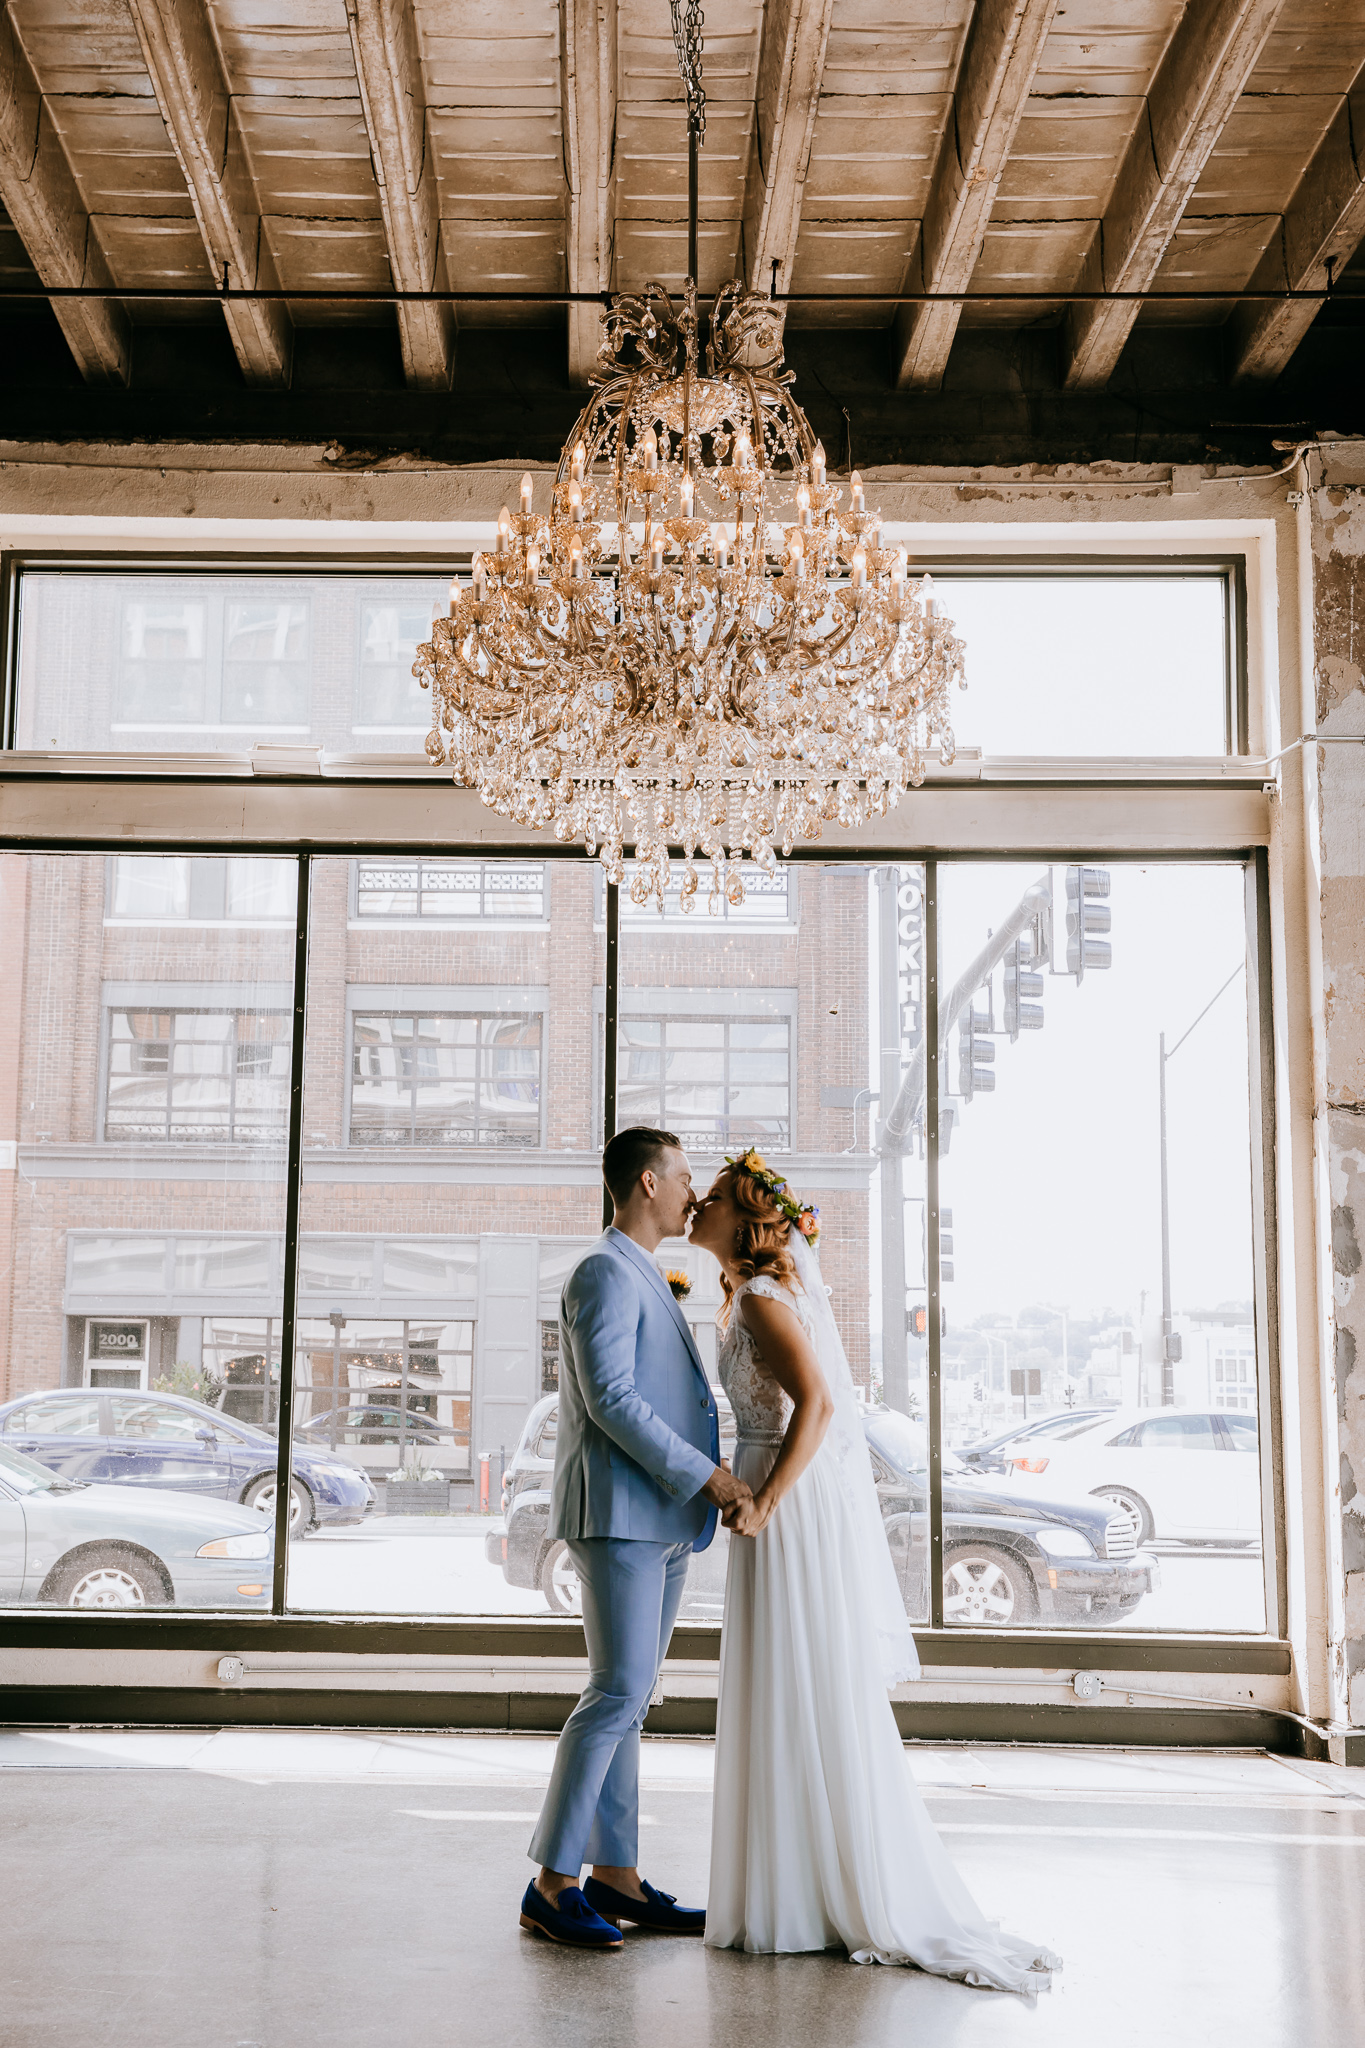 Wedding Photography in Downtown Kansas City by Merry Ohler (2)